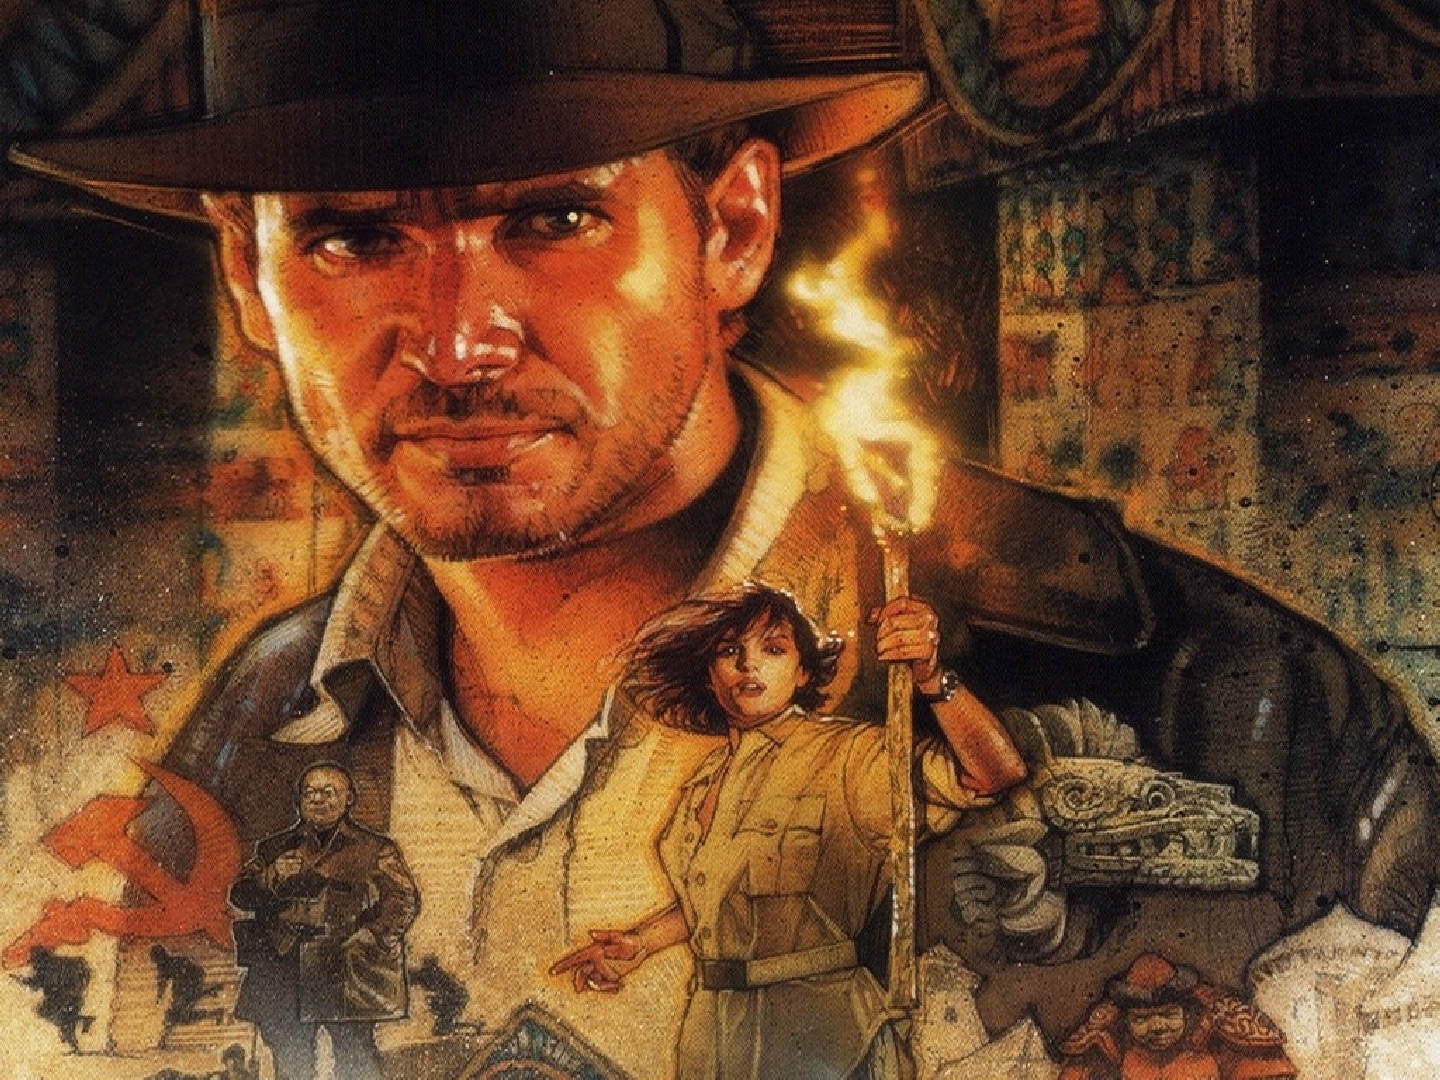 Raiders of the Lost Ark Wallpaper and Background Image 1440x1080 1440x1080